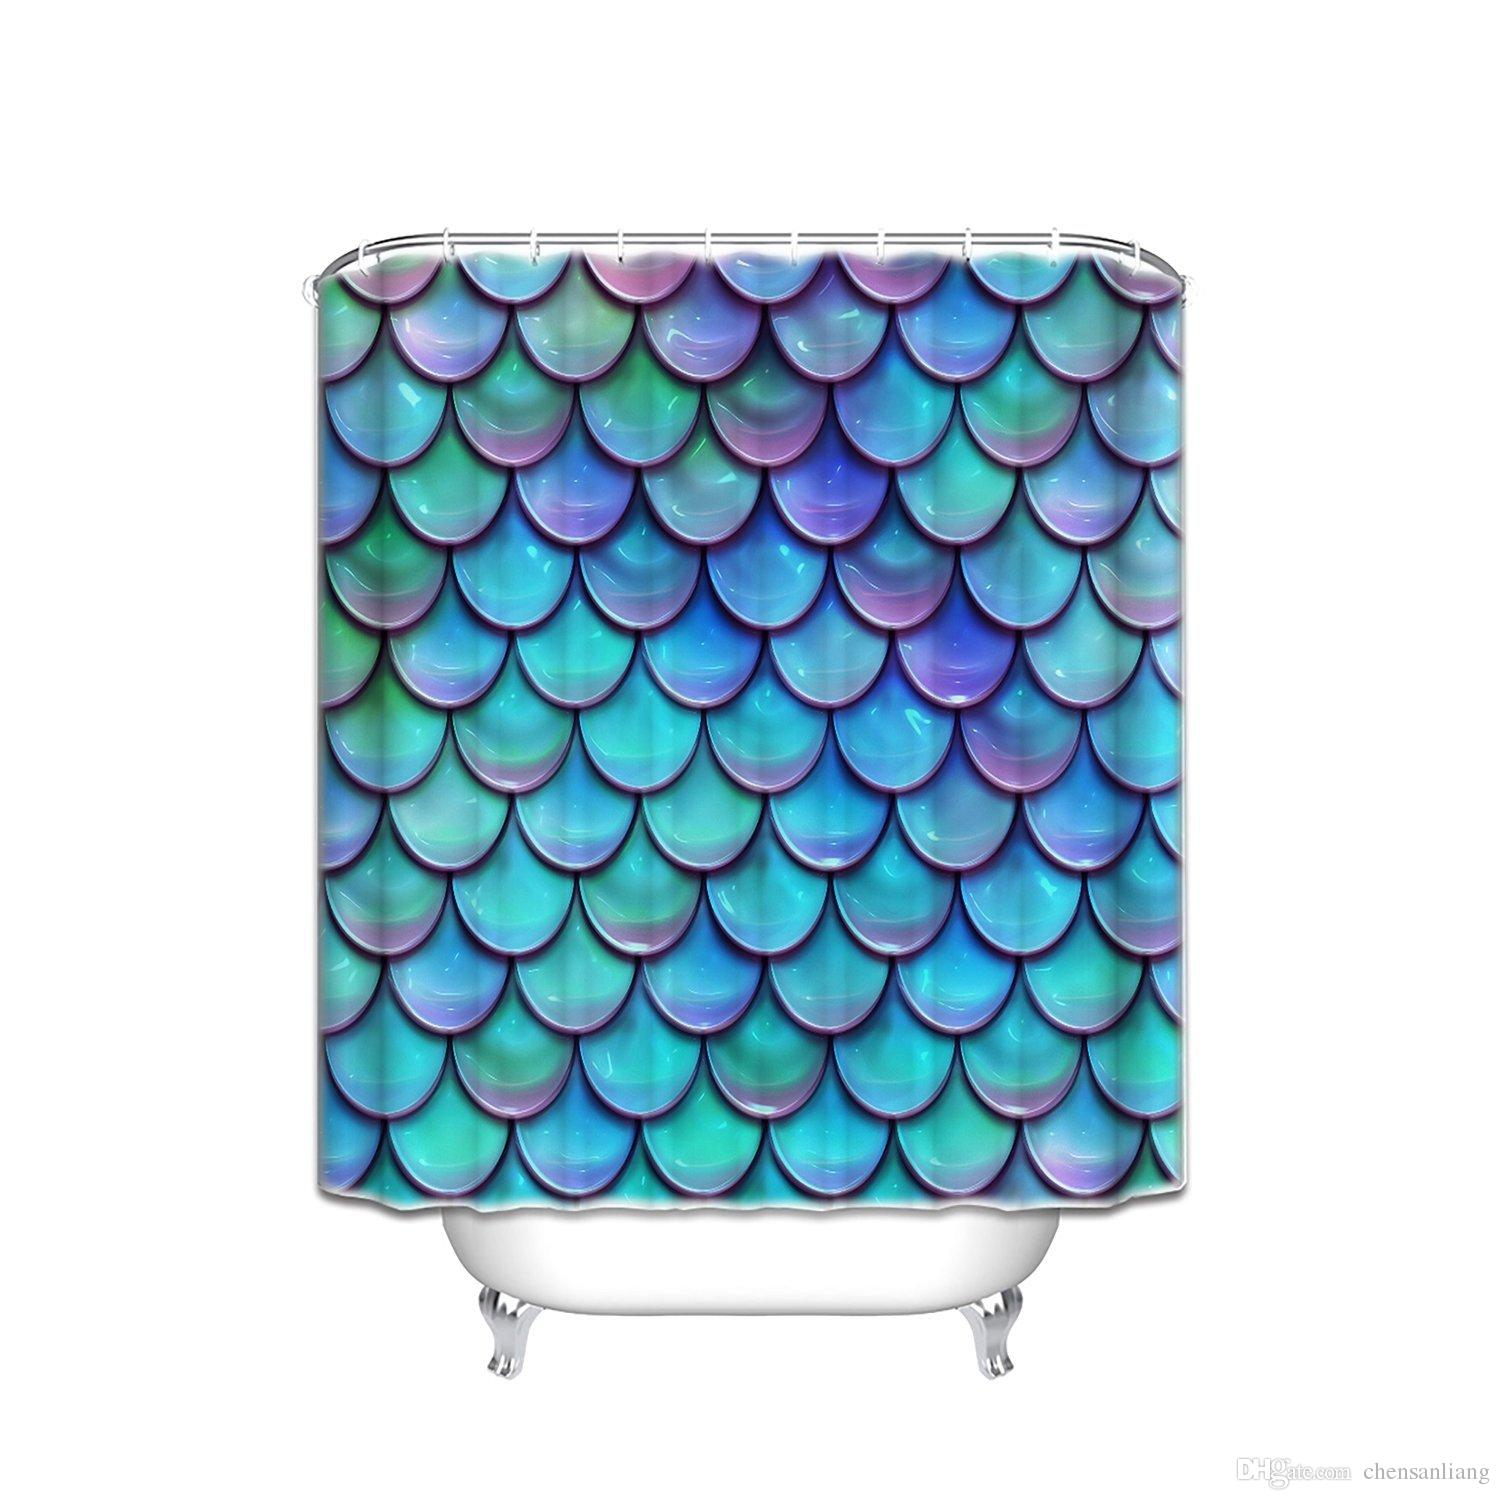 2018 Shower Curtain Fish Scales Purple Blue Bathroom Polyester Curtains Waterproof Antibacterial With 12 Hooks Bath From Chensanliang